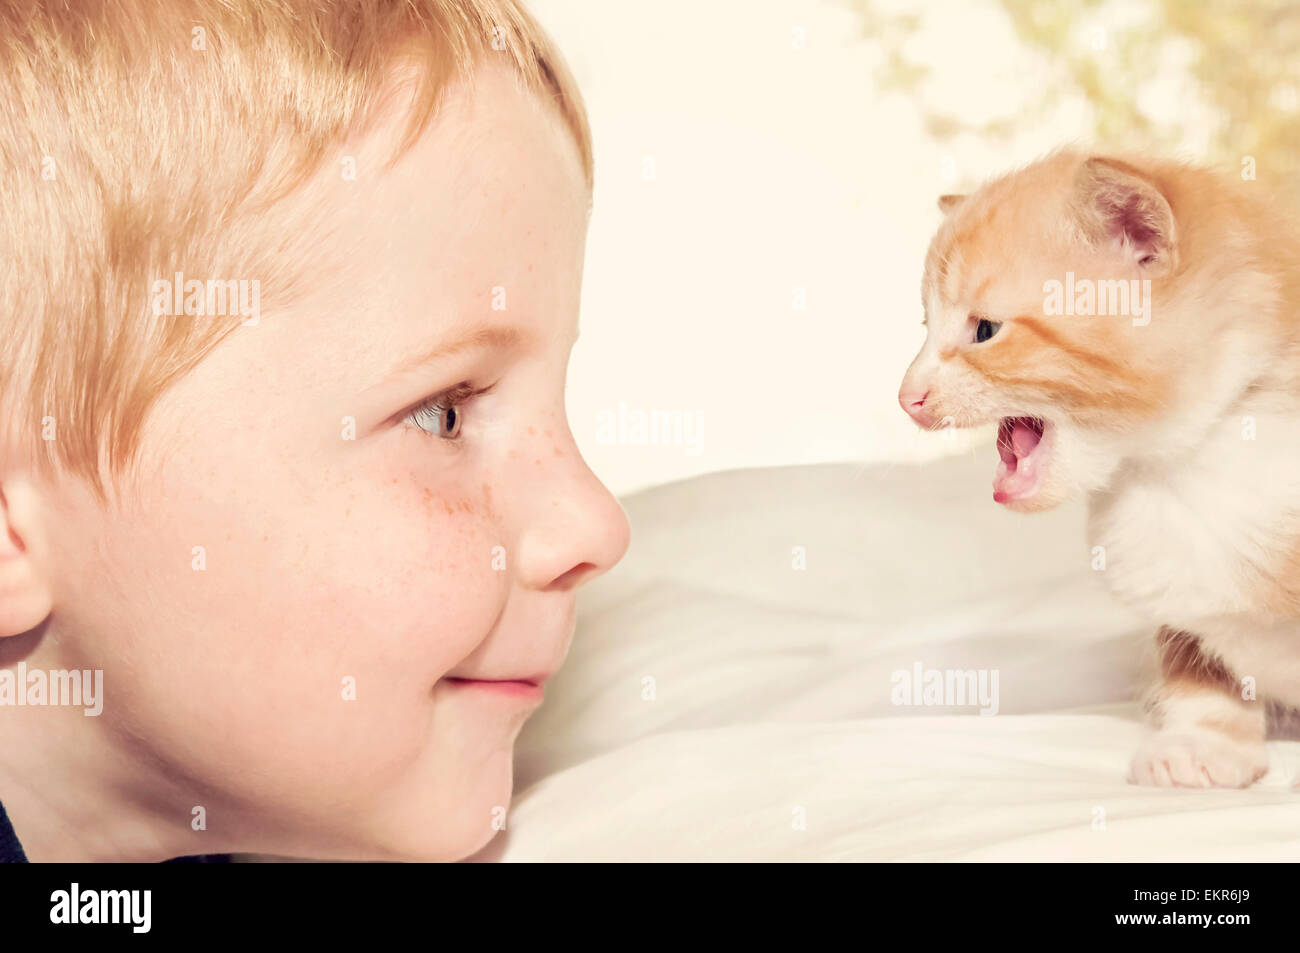 close view of boy and kitten faces - Stock Image